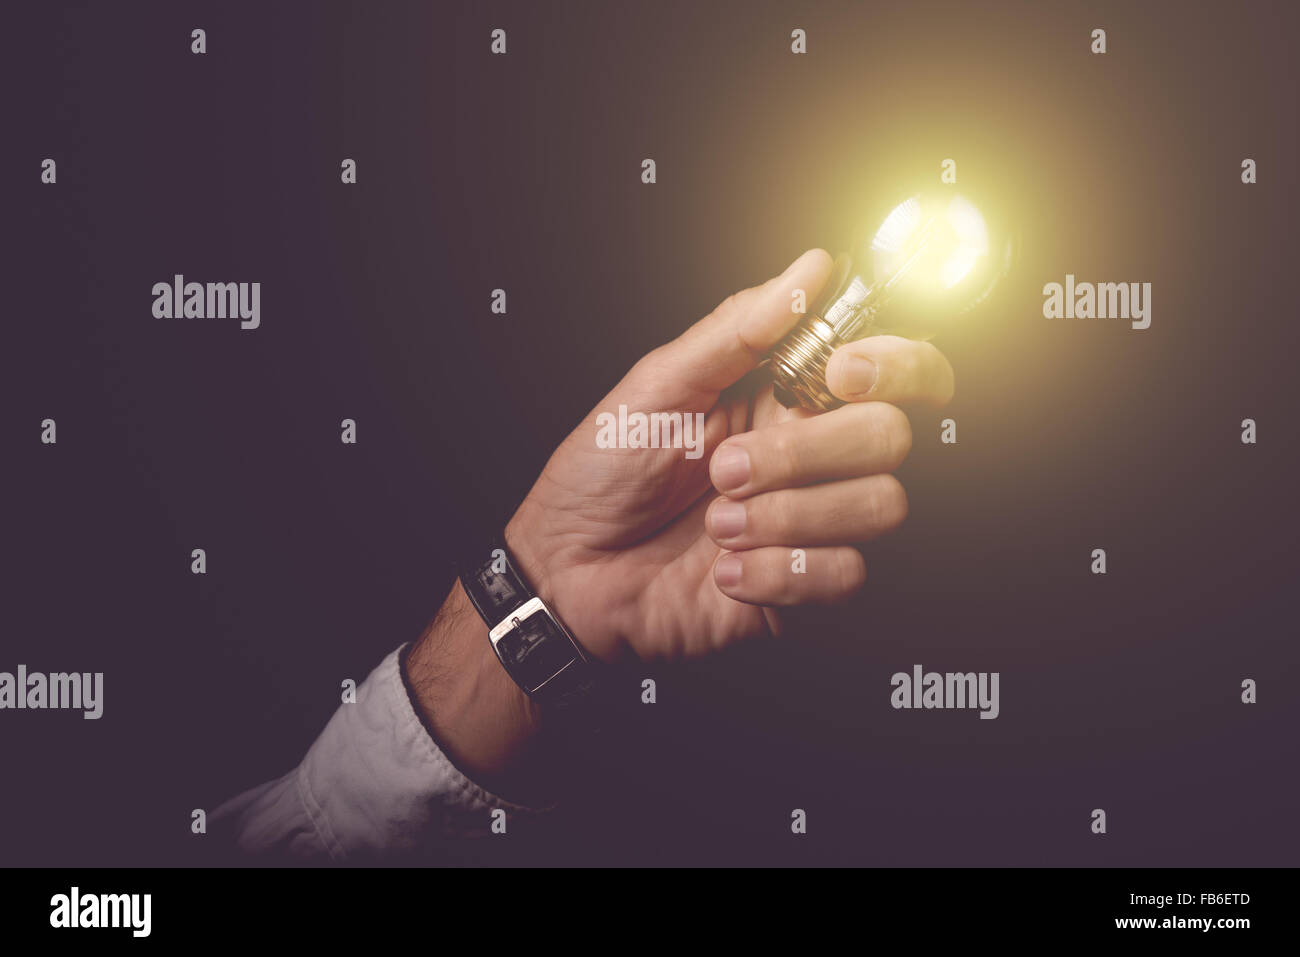 Businessman holding light bulb, concept of new ideas, business innovation and creativity, retro toned image, selective - Stock Image